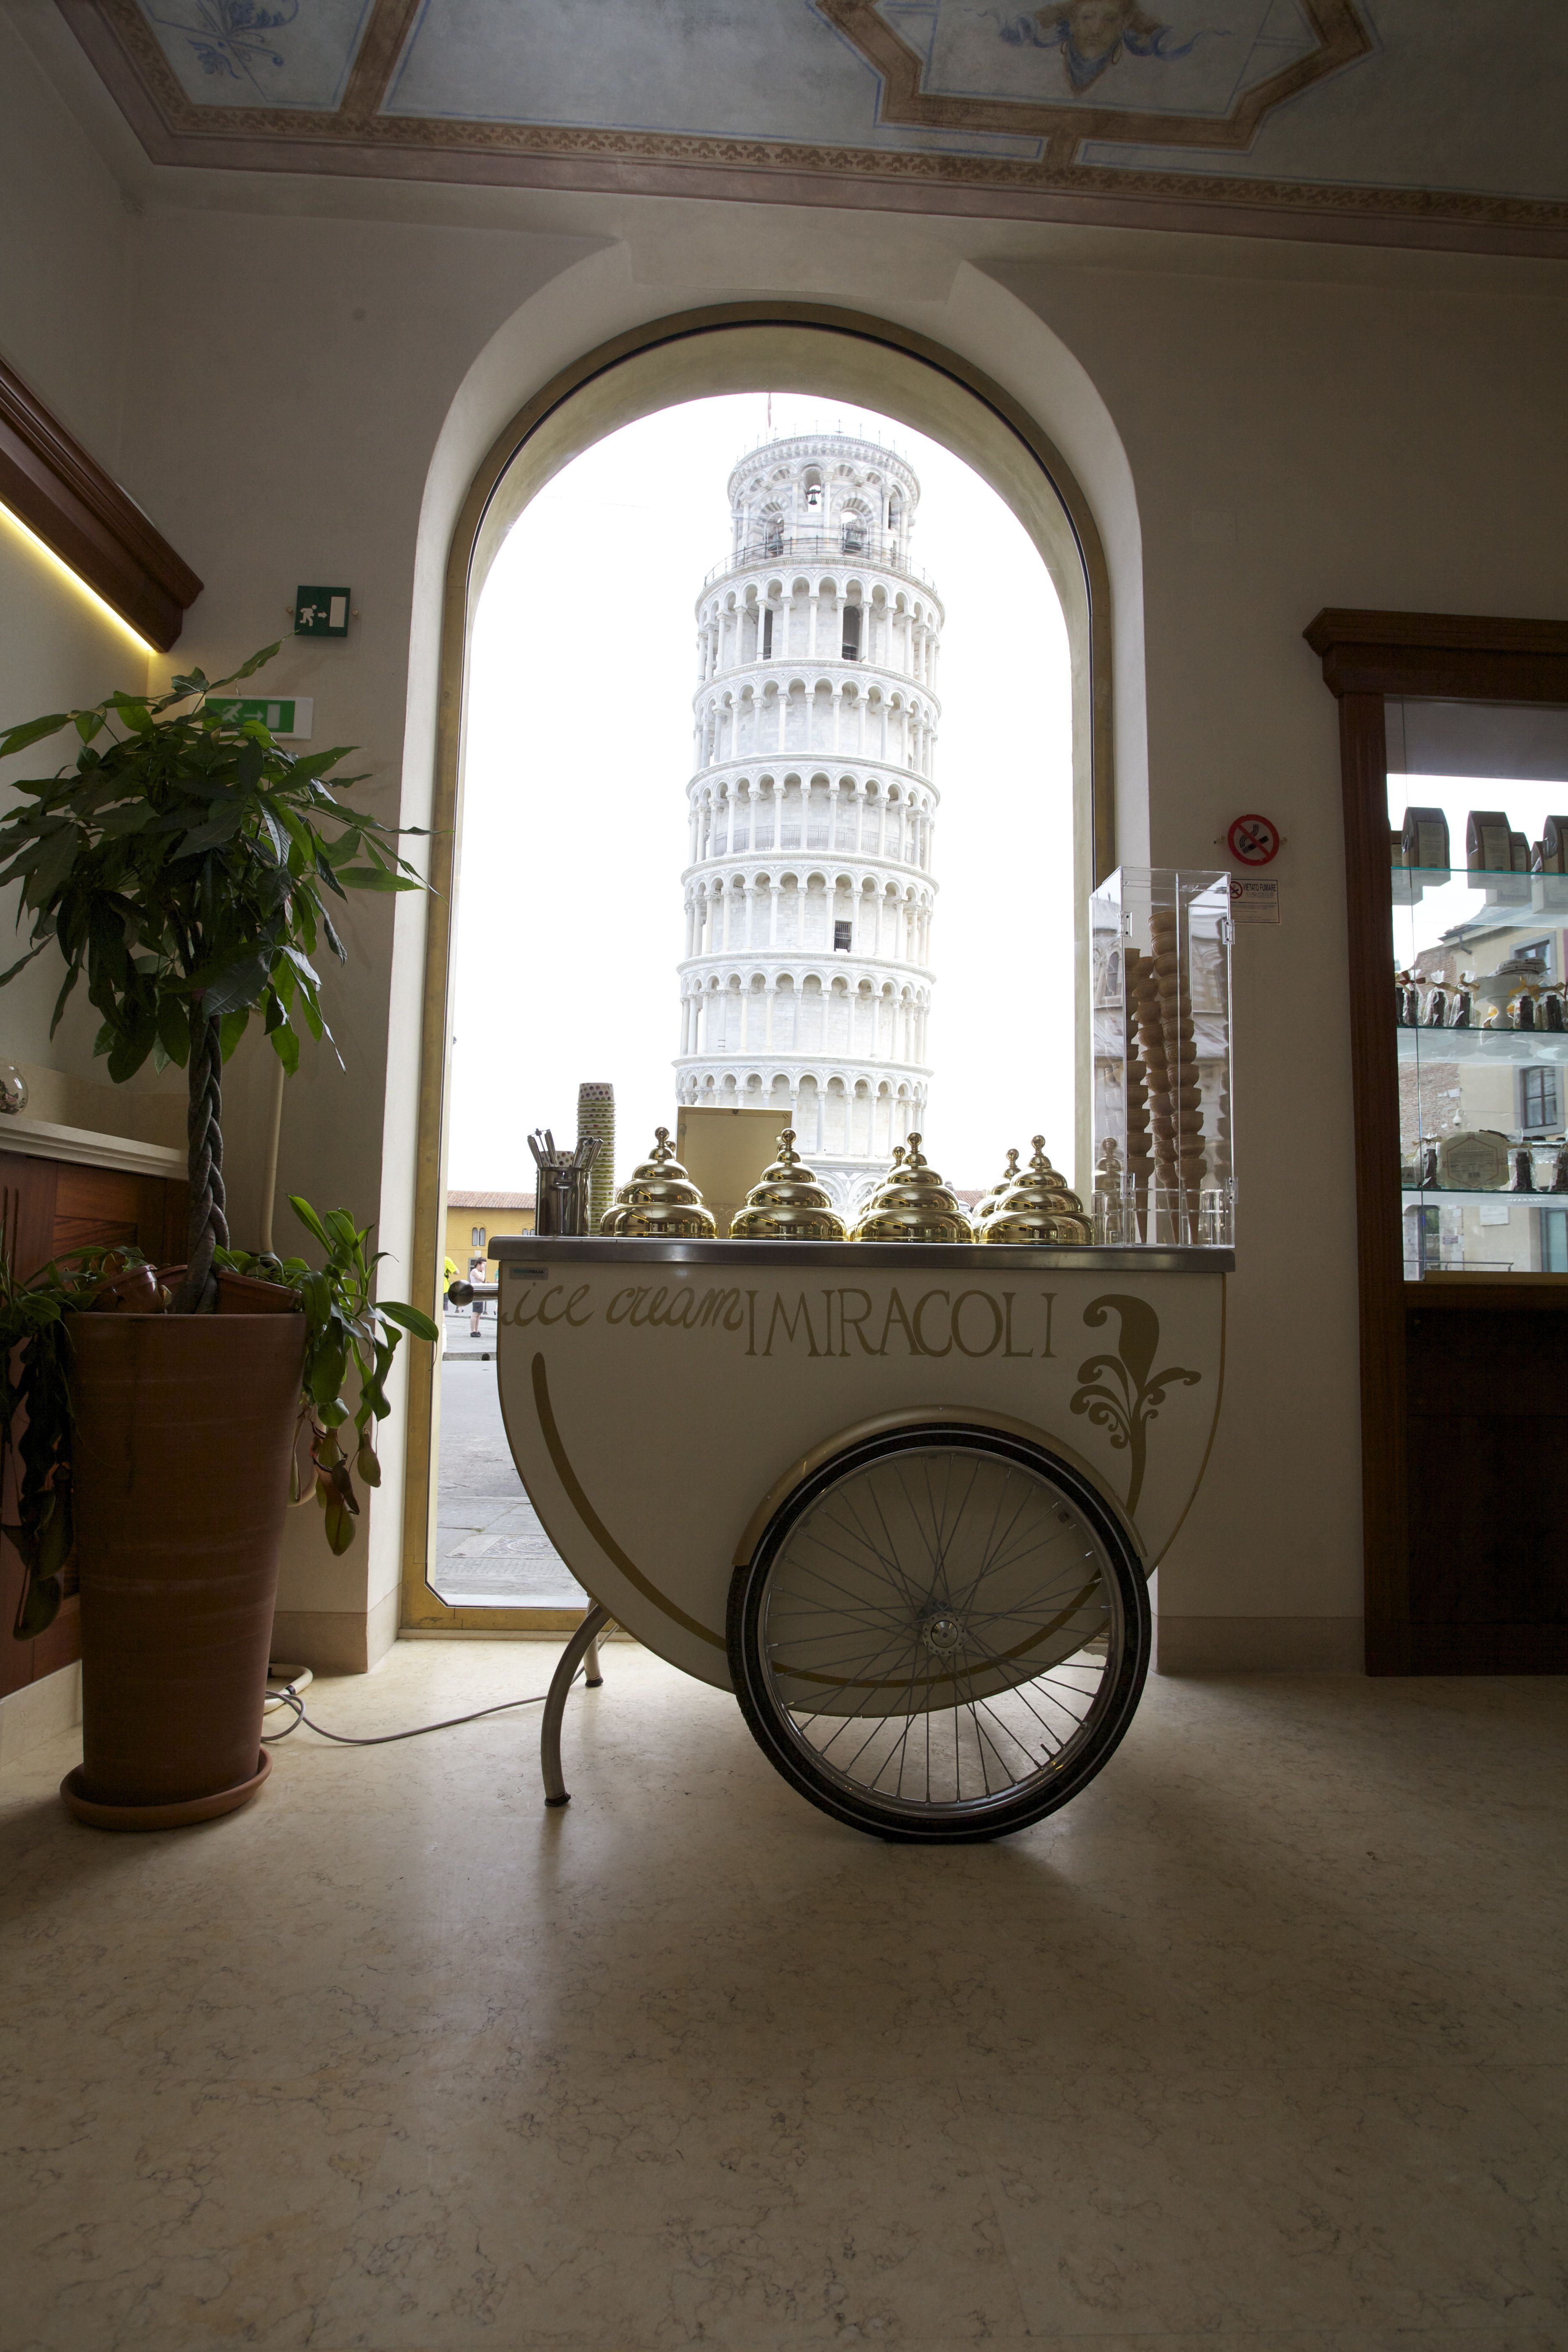 Cafè Pastry Shop I Miracoli Pisa 'View on the Leaning Tower'